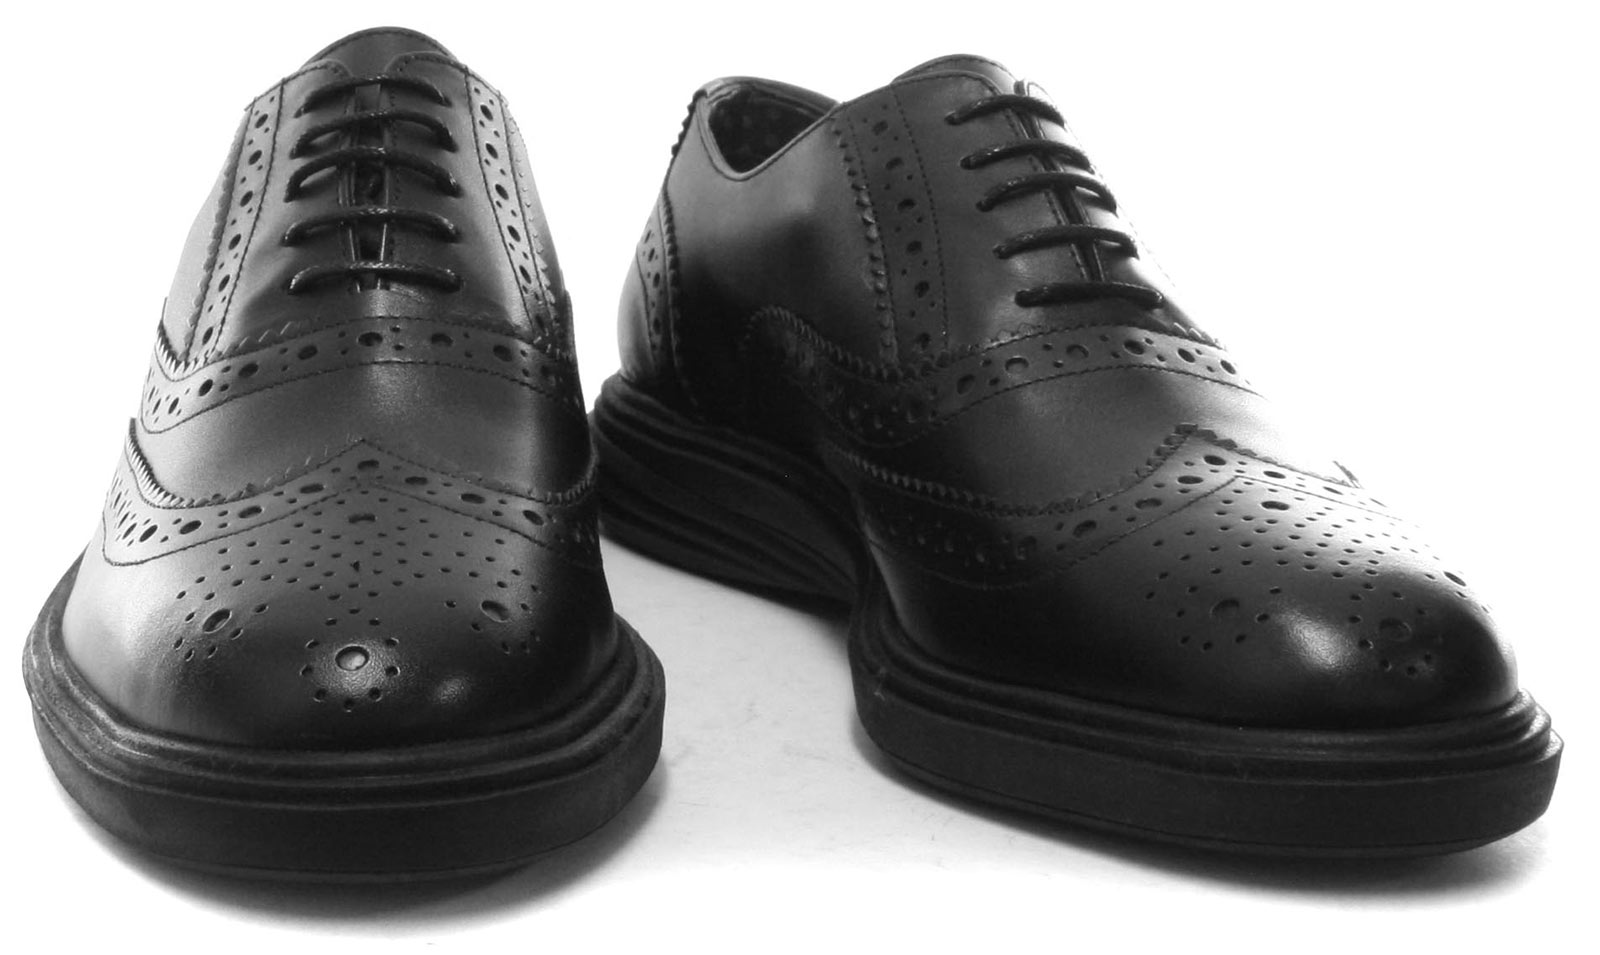 New Schuhes London Brogues Geoffrey   Herren Oxford Brogue Schuhes New ALL SIZES AND COLOURS f4aa1e